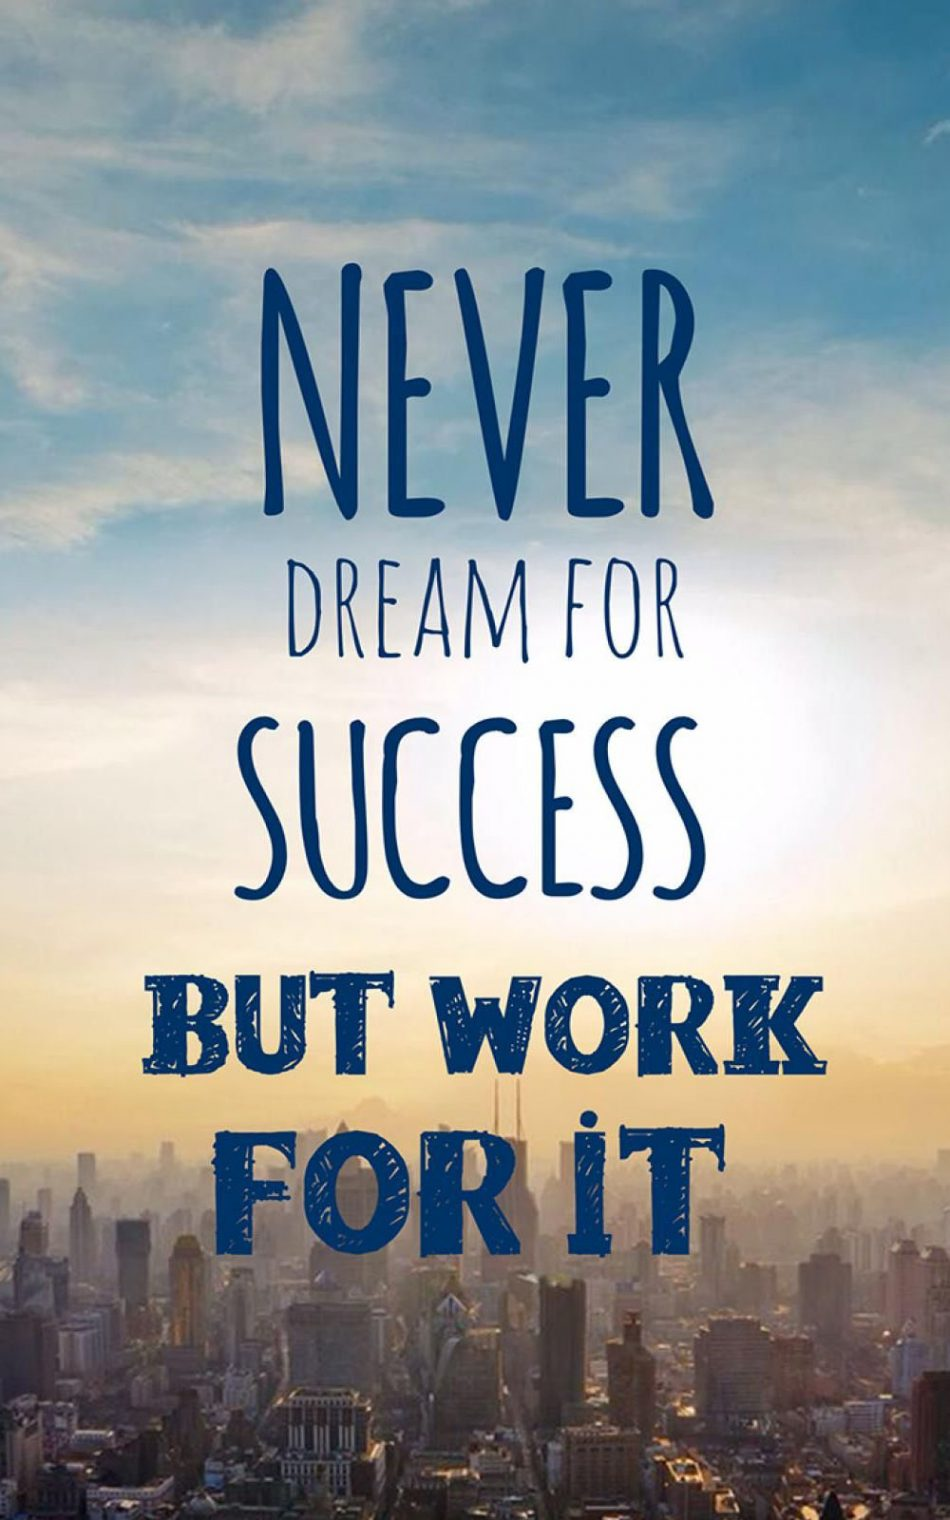 Dream Success Work HD Mobile Wallpaper